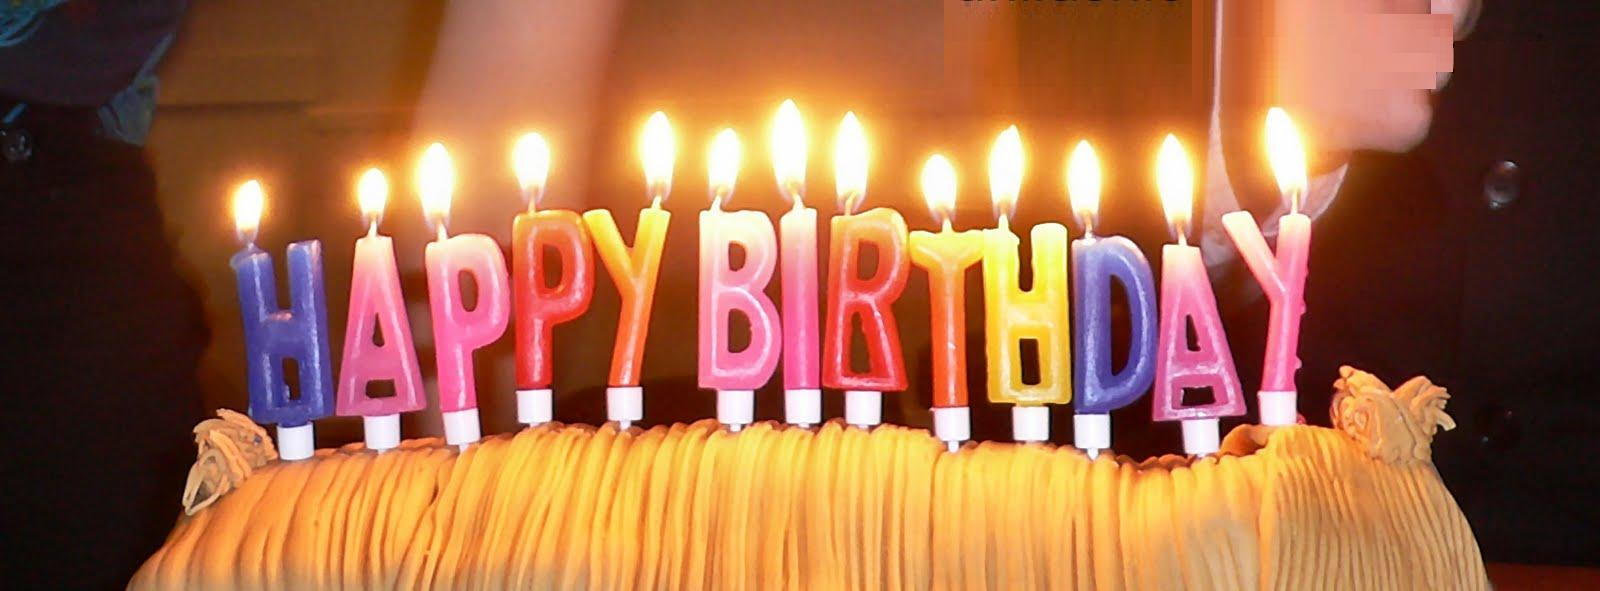 Happy Birthday Animated Wallpaper Free Download